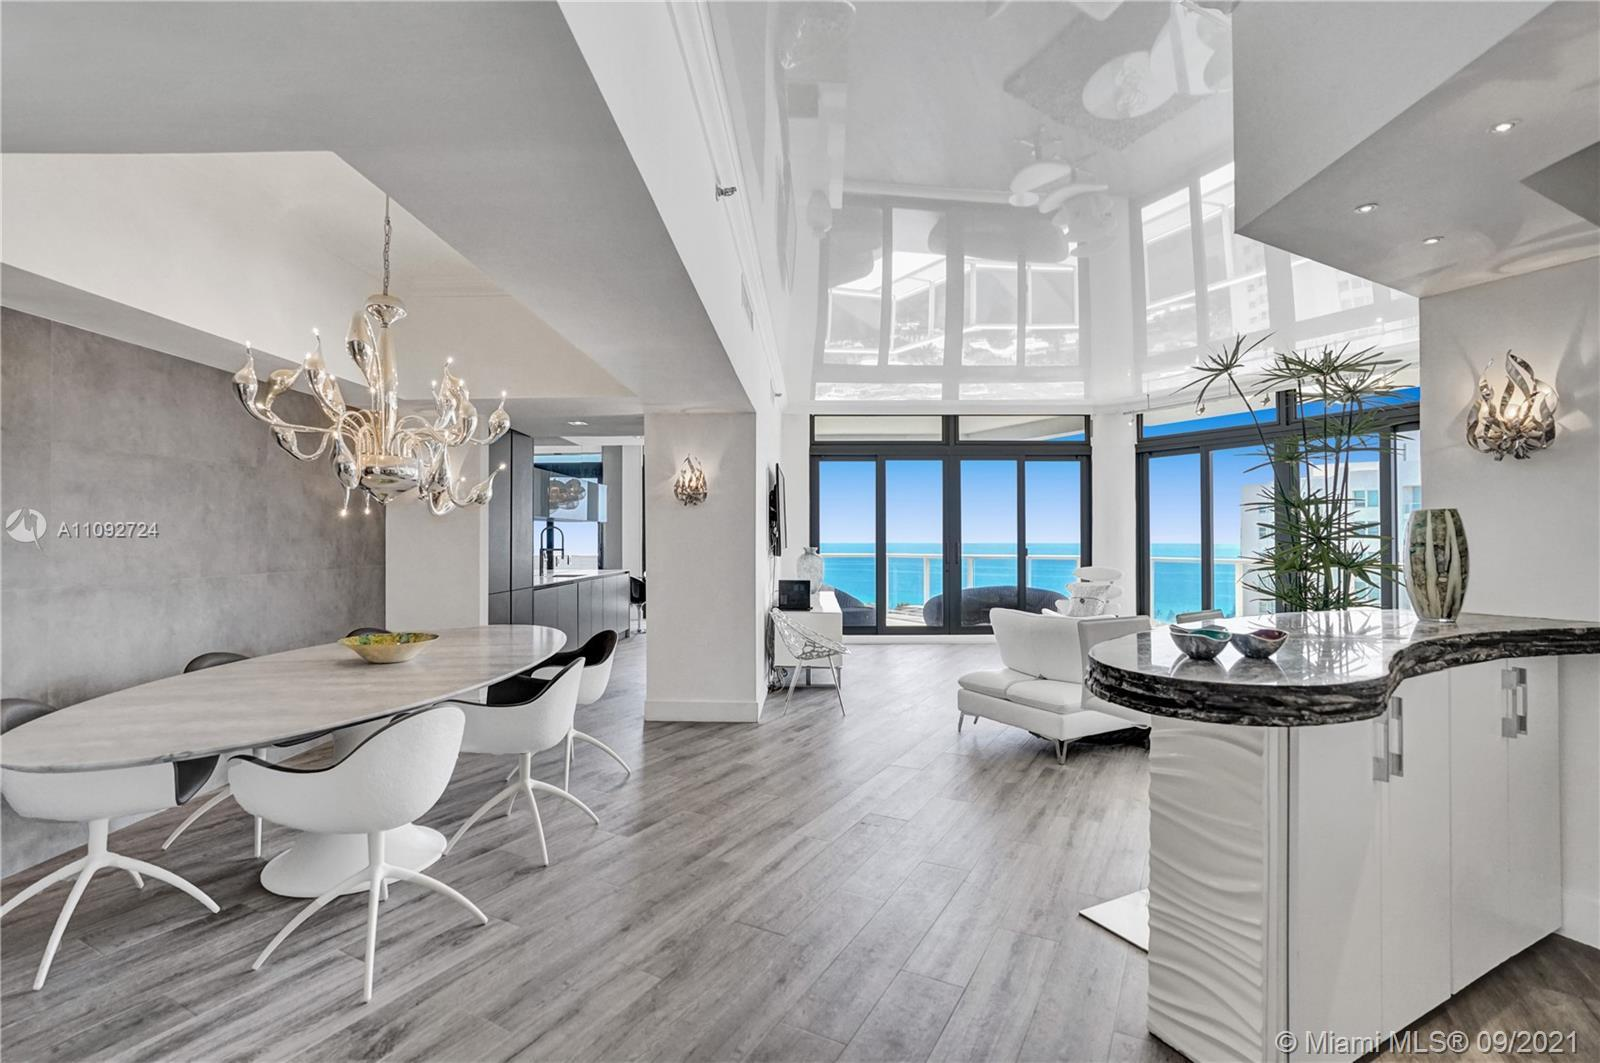 LUXURY TOWERSUITE. PERFECTION IN A MODERN CONTEMPORARY HIGH END RESIDENCE. PANORAMIC DIRECT OCEAN VI